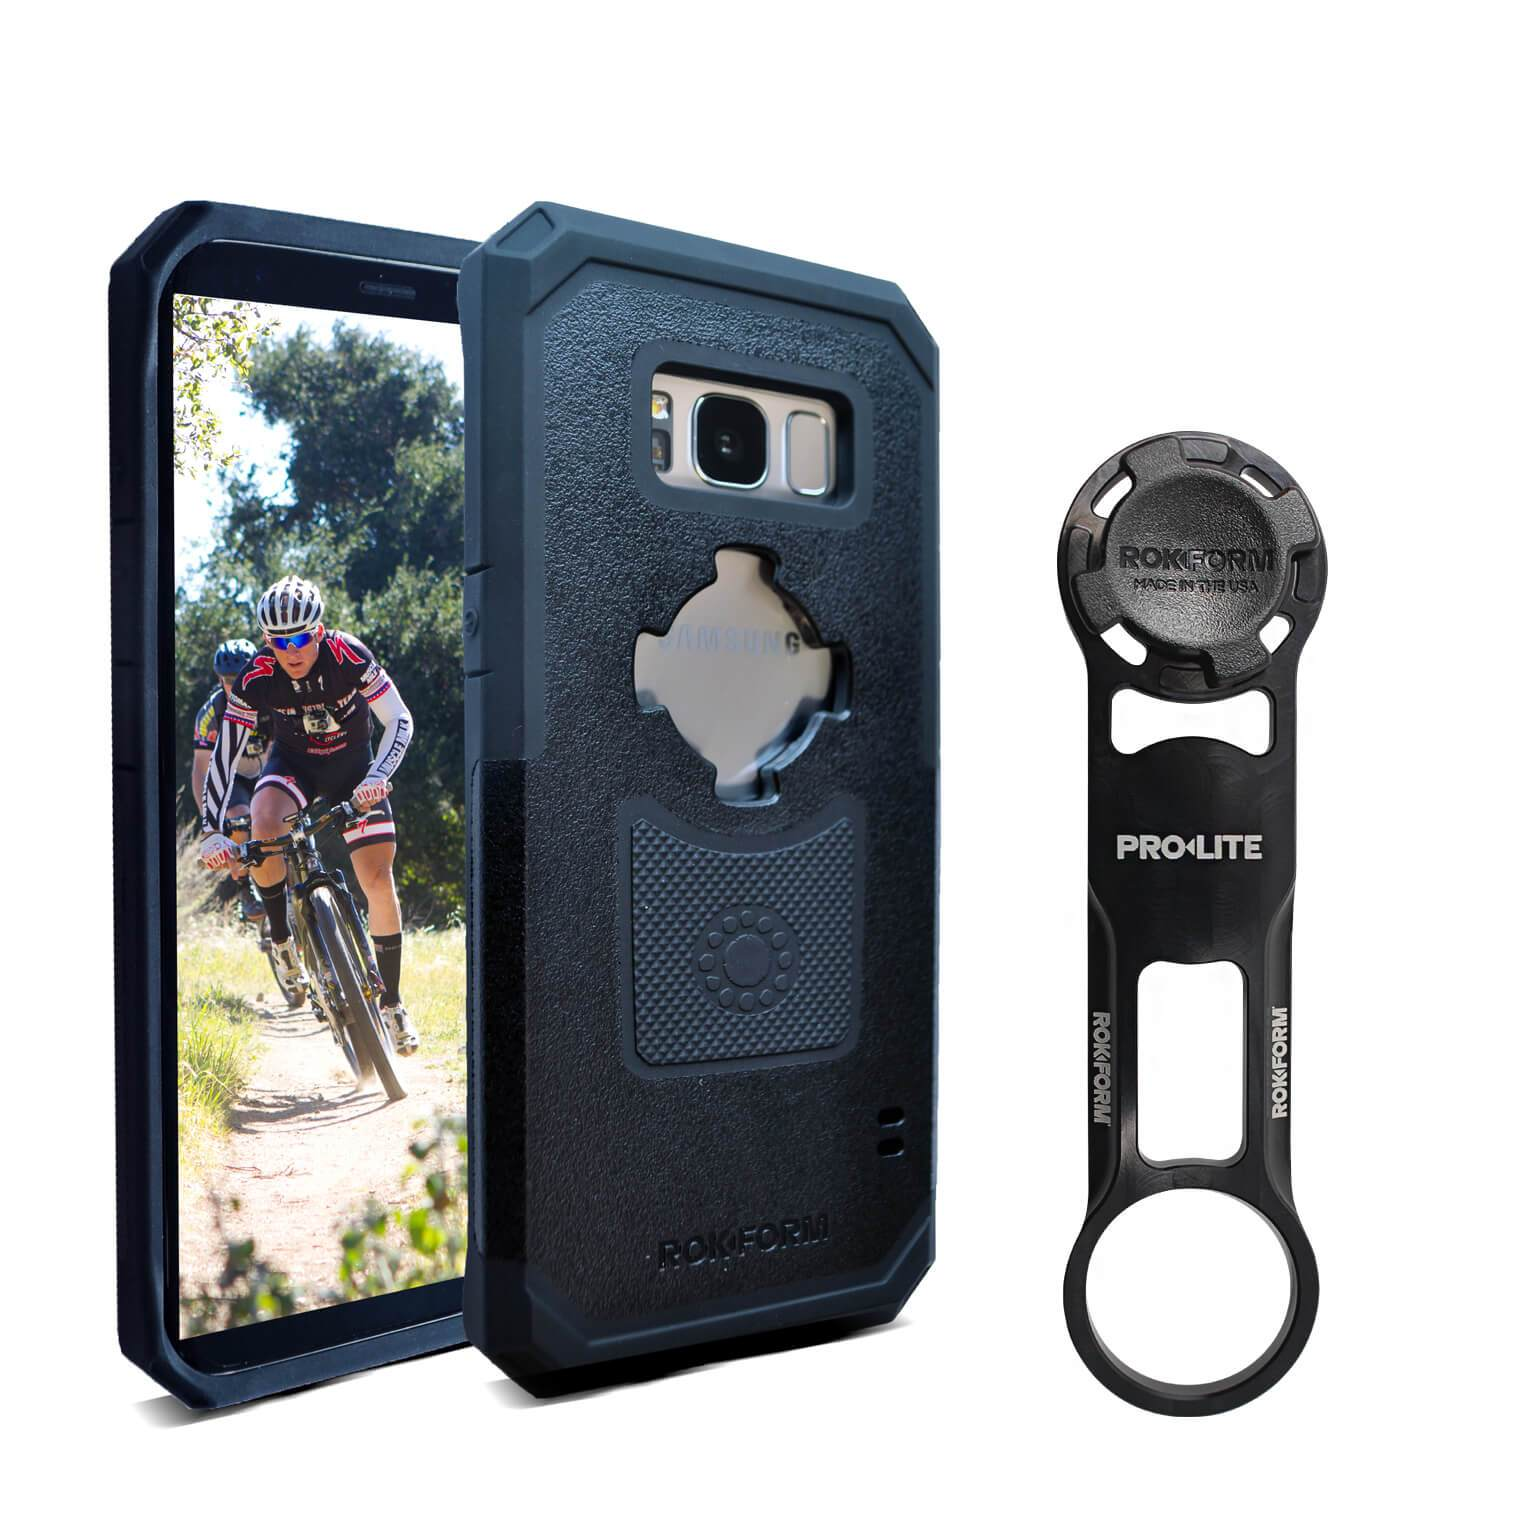 Galaxy S8 PRO-LITE™ Bike Mount Kit - Rokform